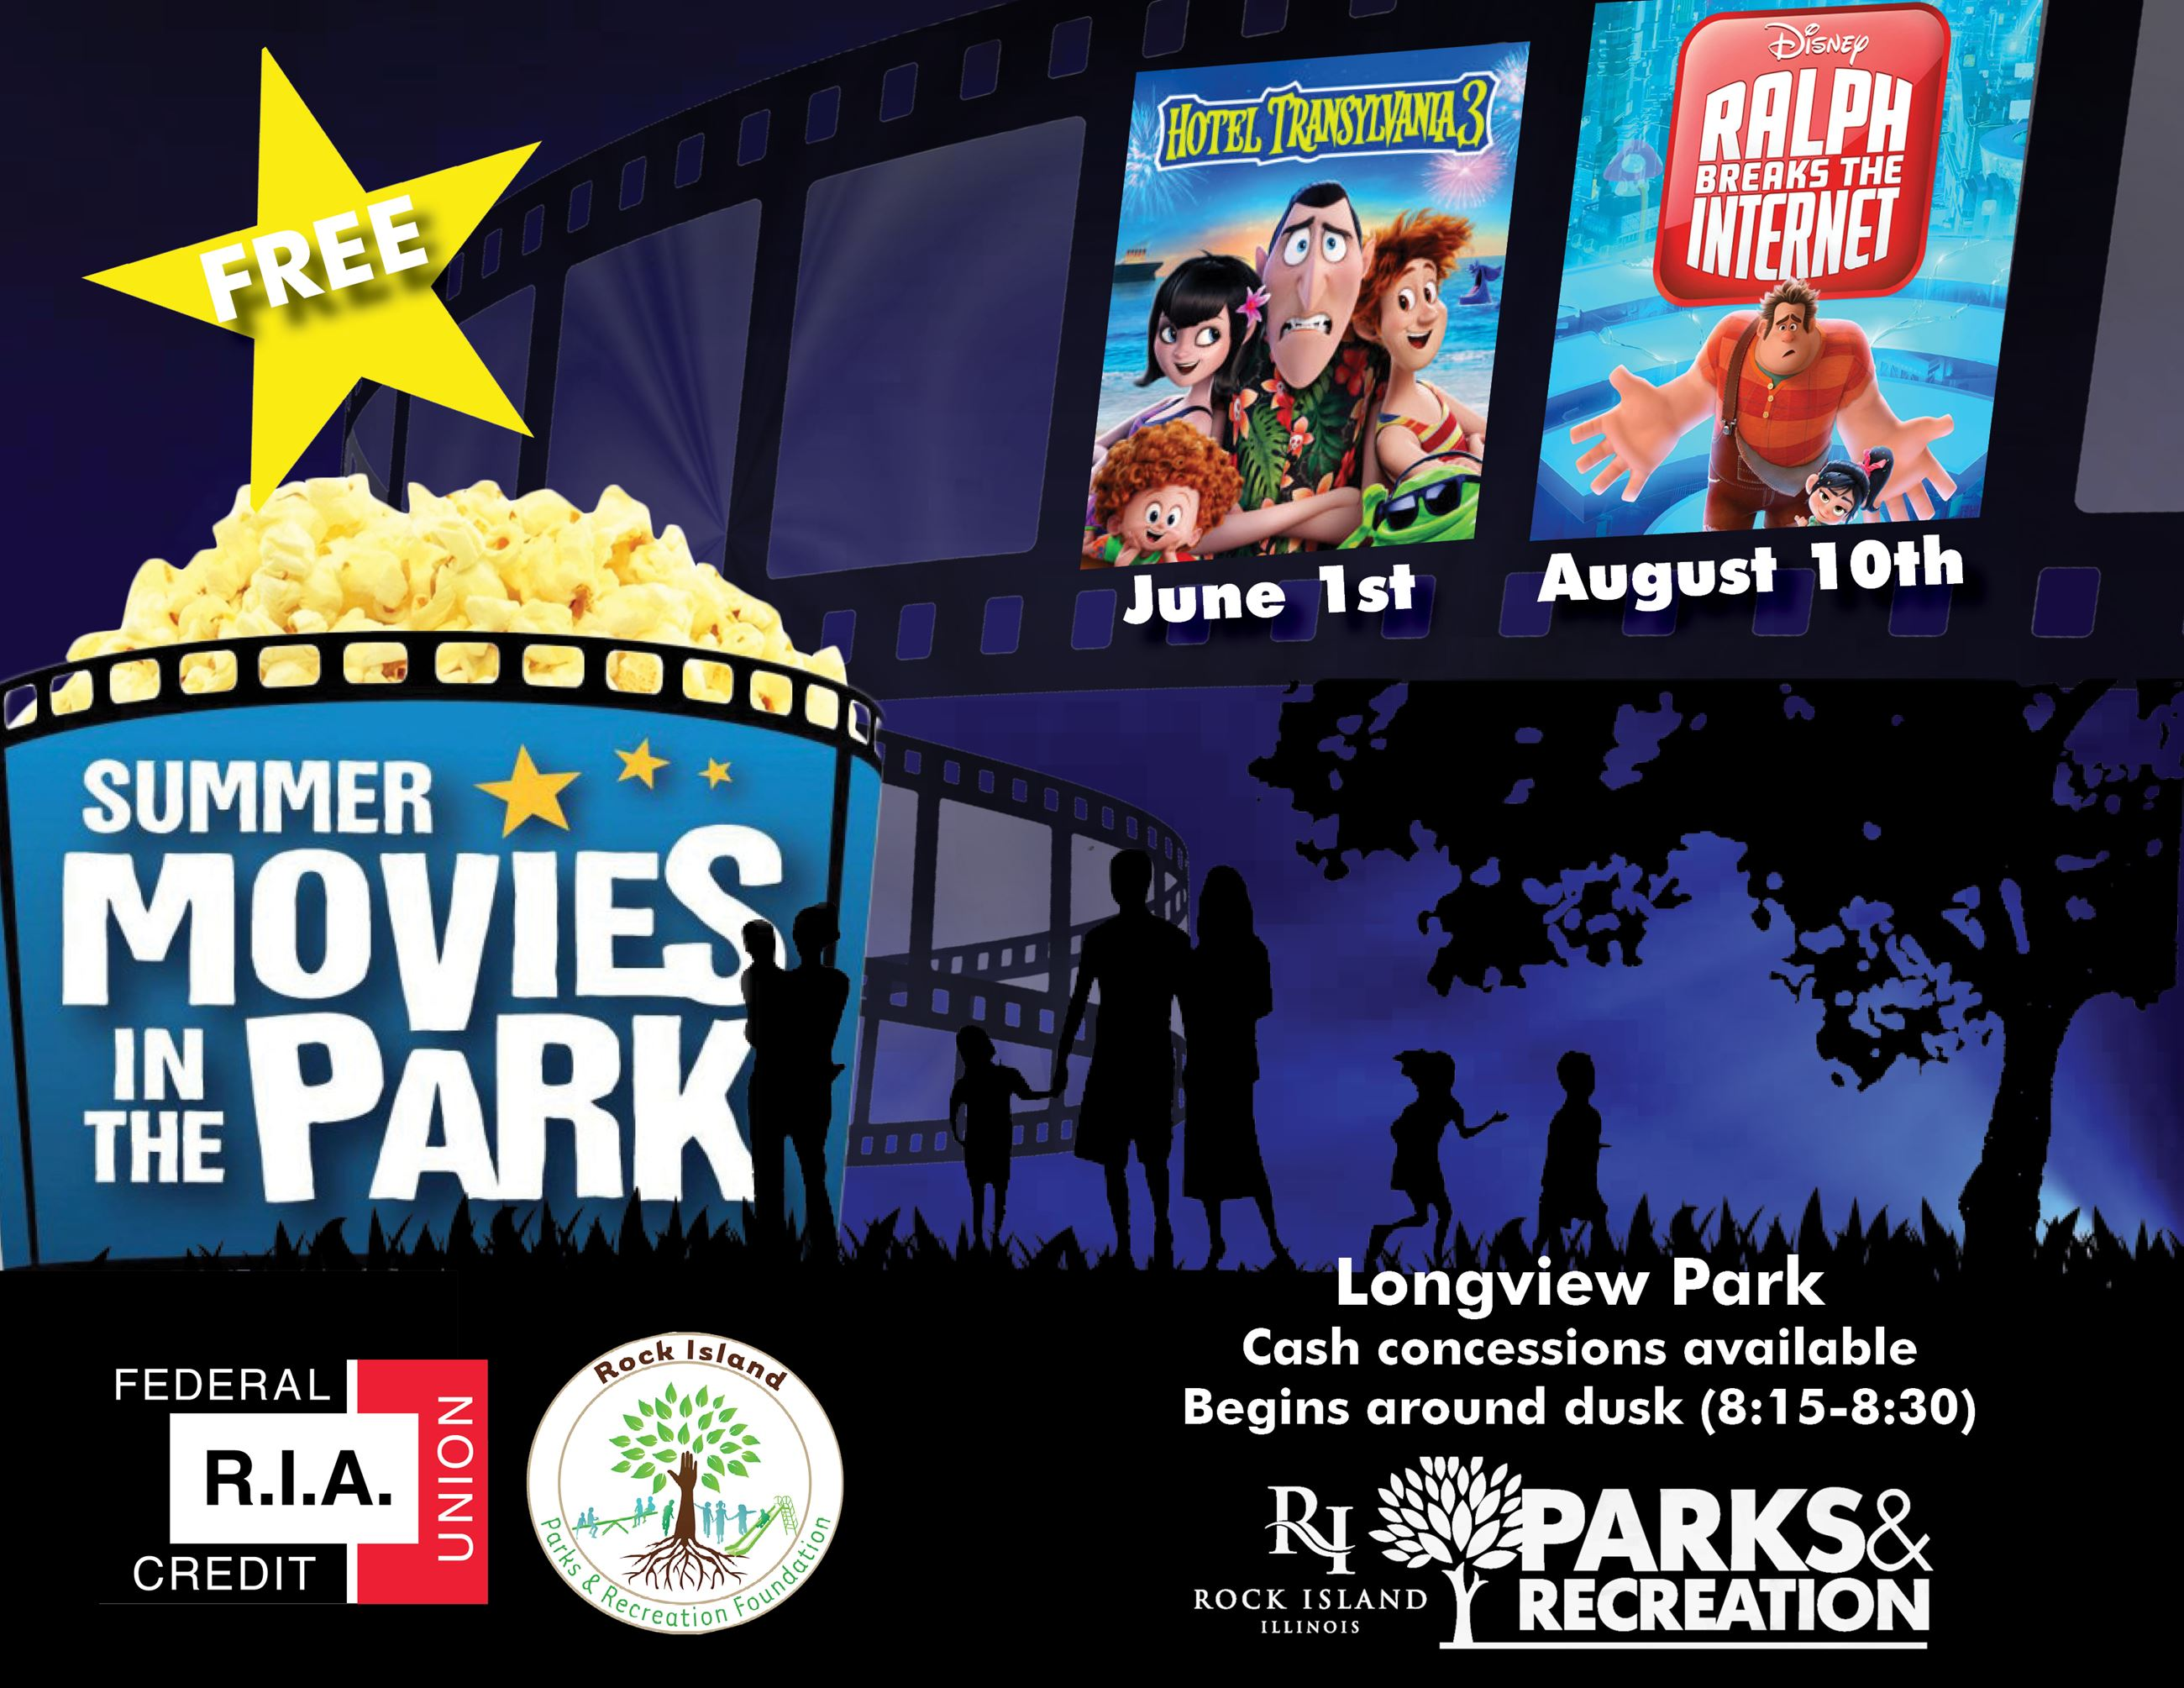 Movies in Longview Park